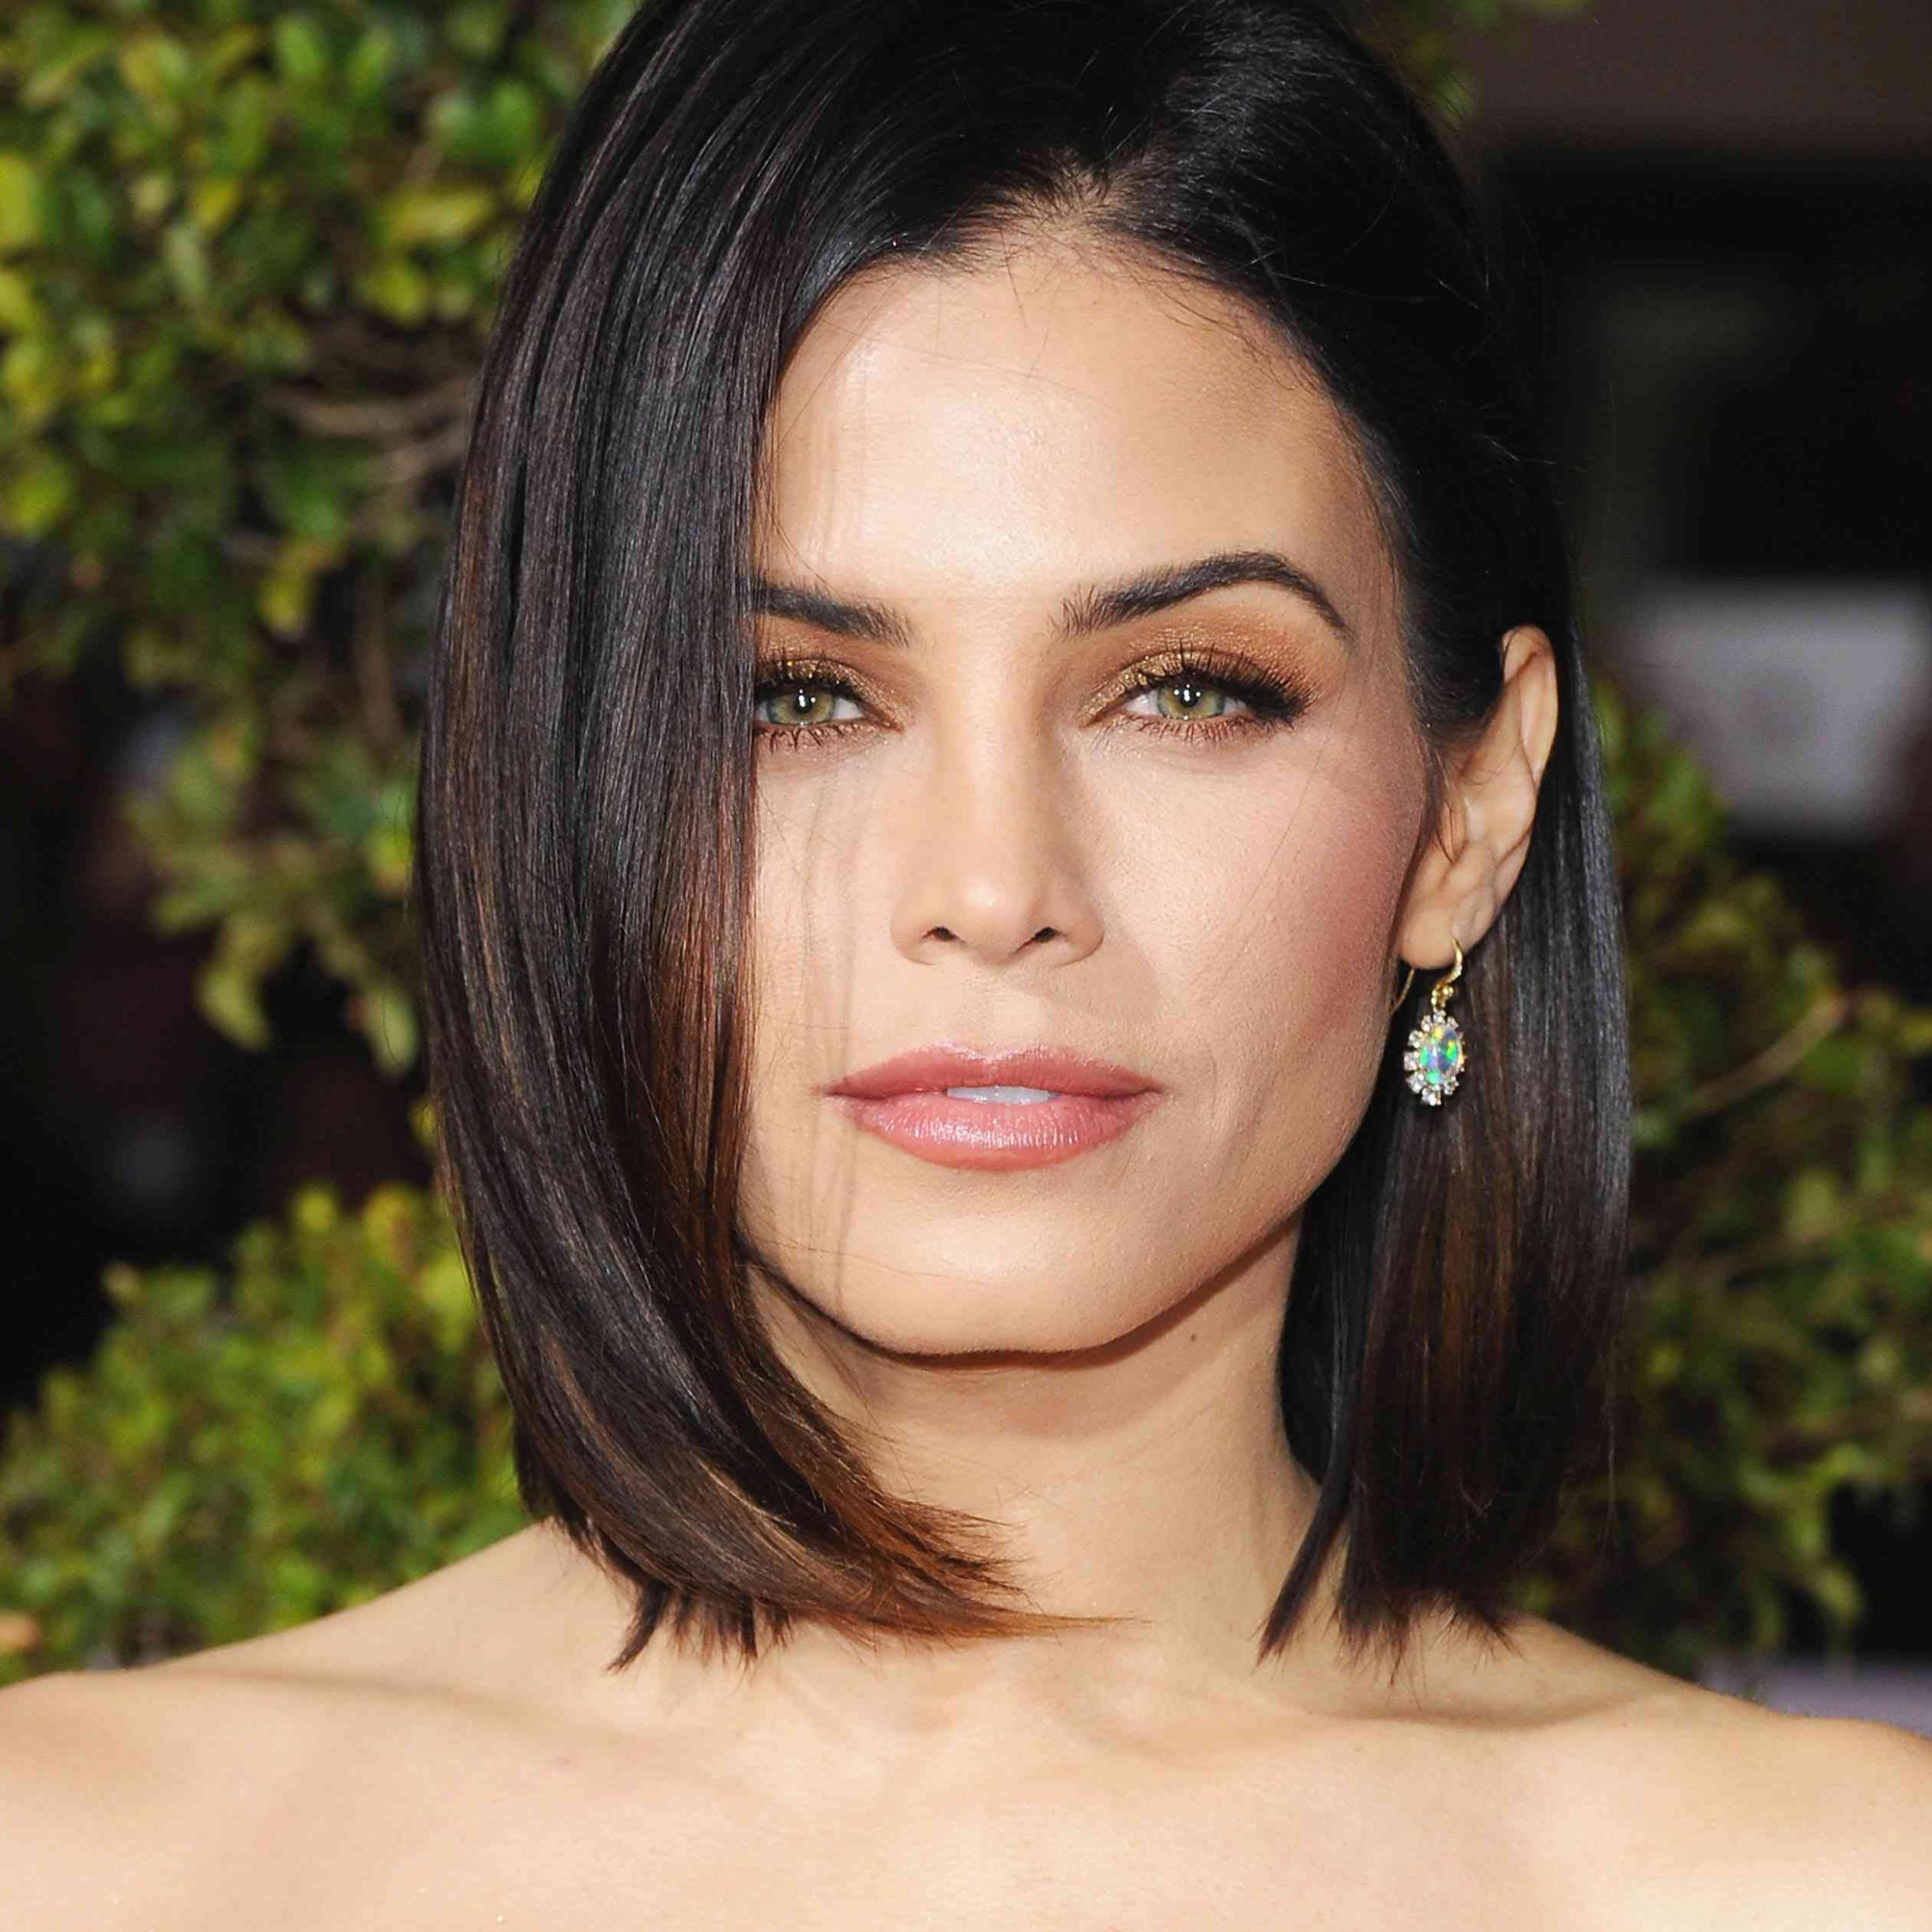 How To Choose A Haircut That Flatters Your Face Shape Small Face Haircut